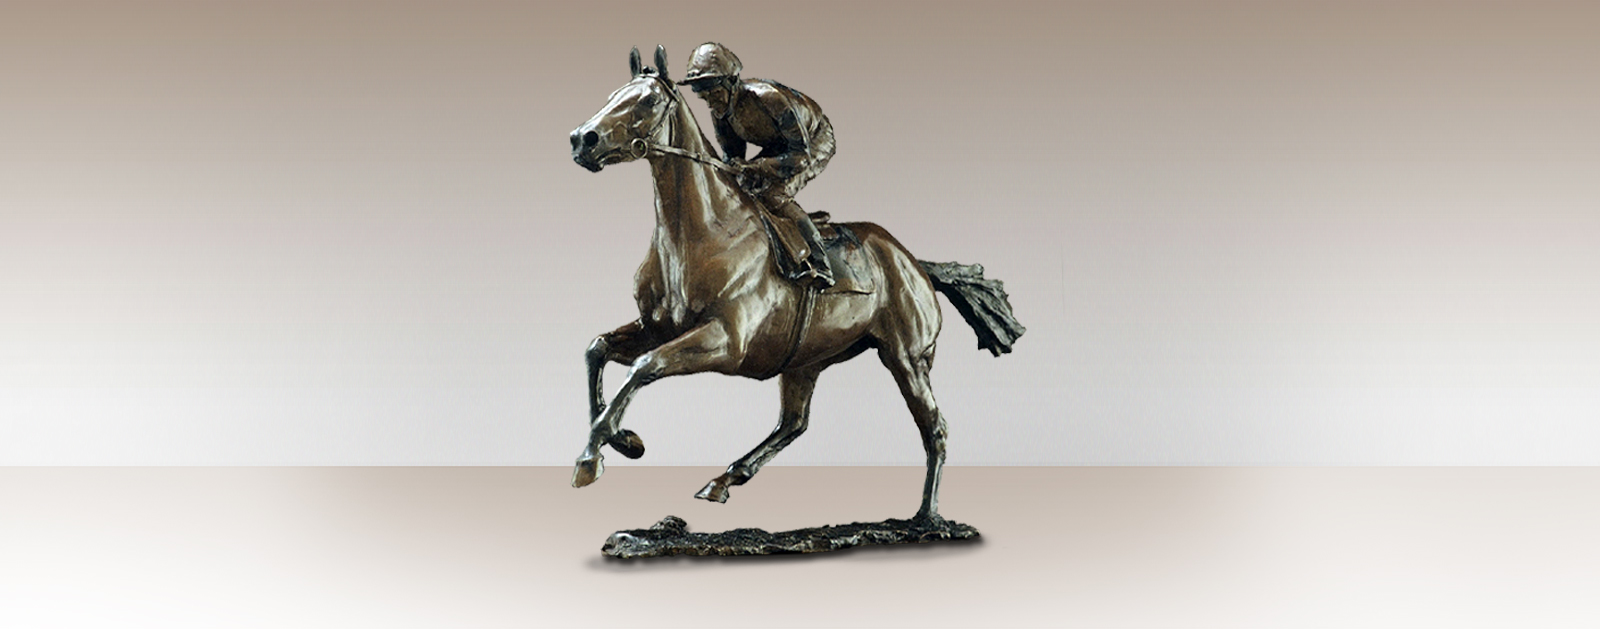 horse-statue-sculpture-bronze-trophy-suave-dancer